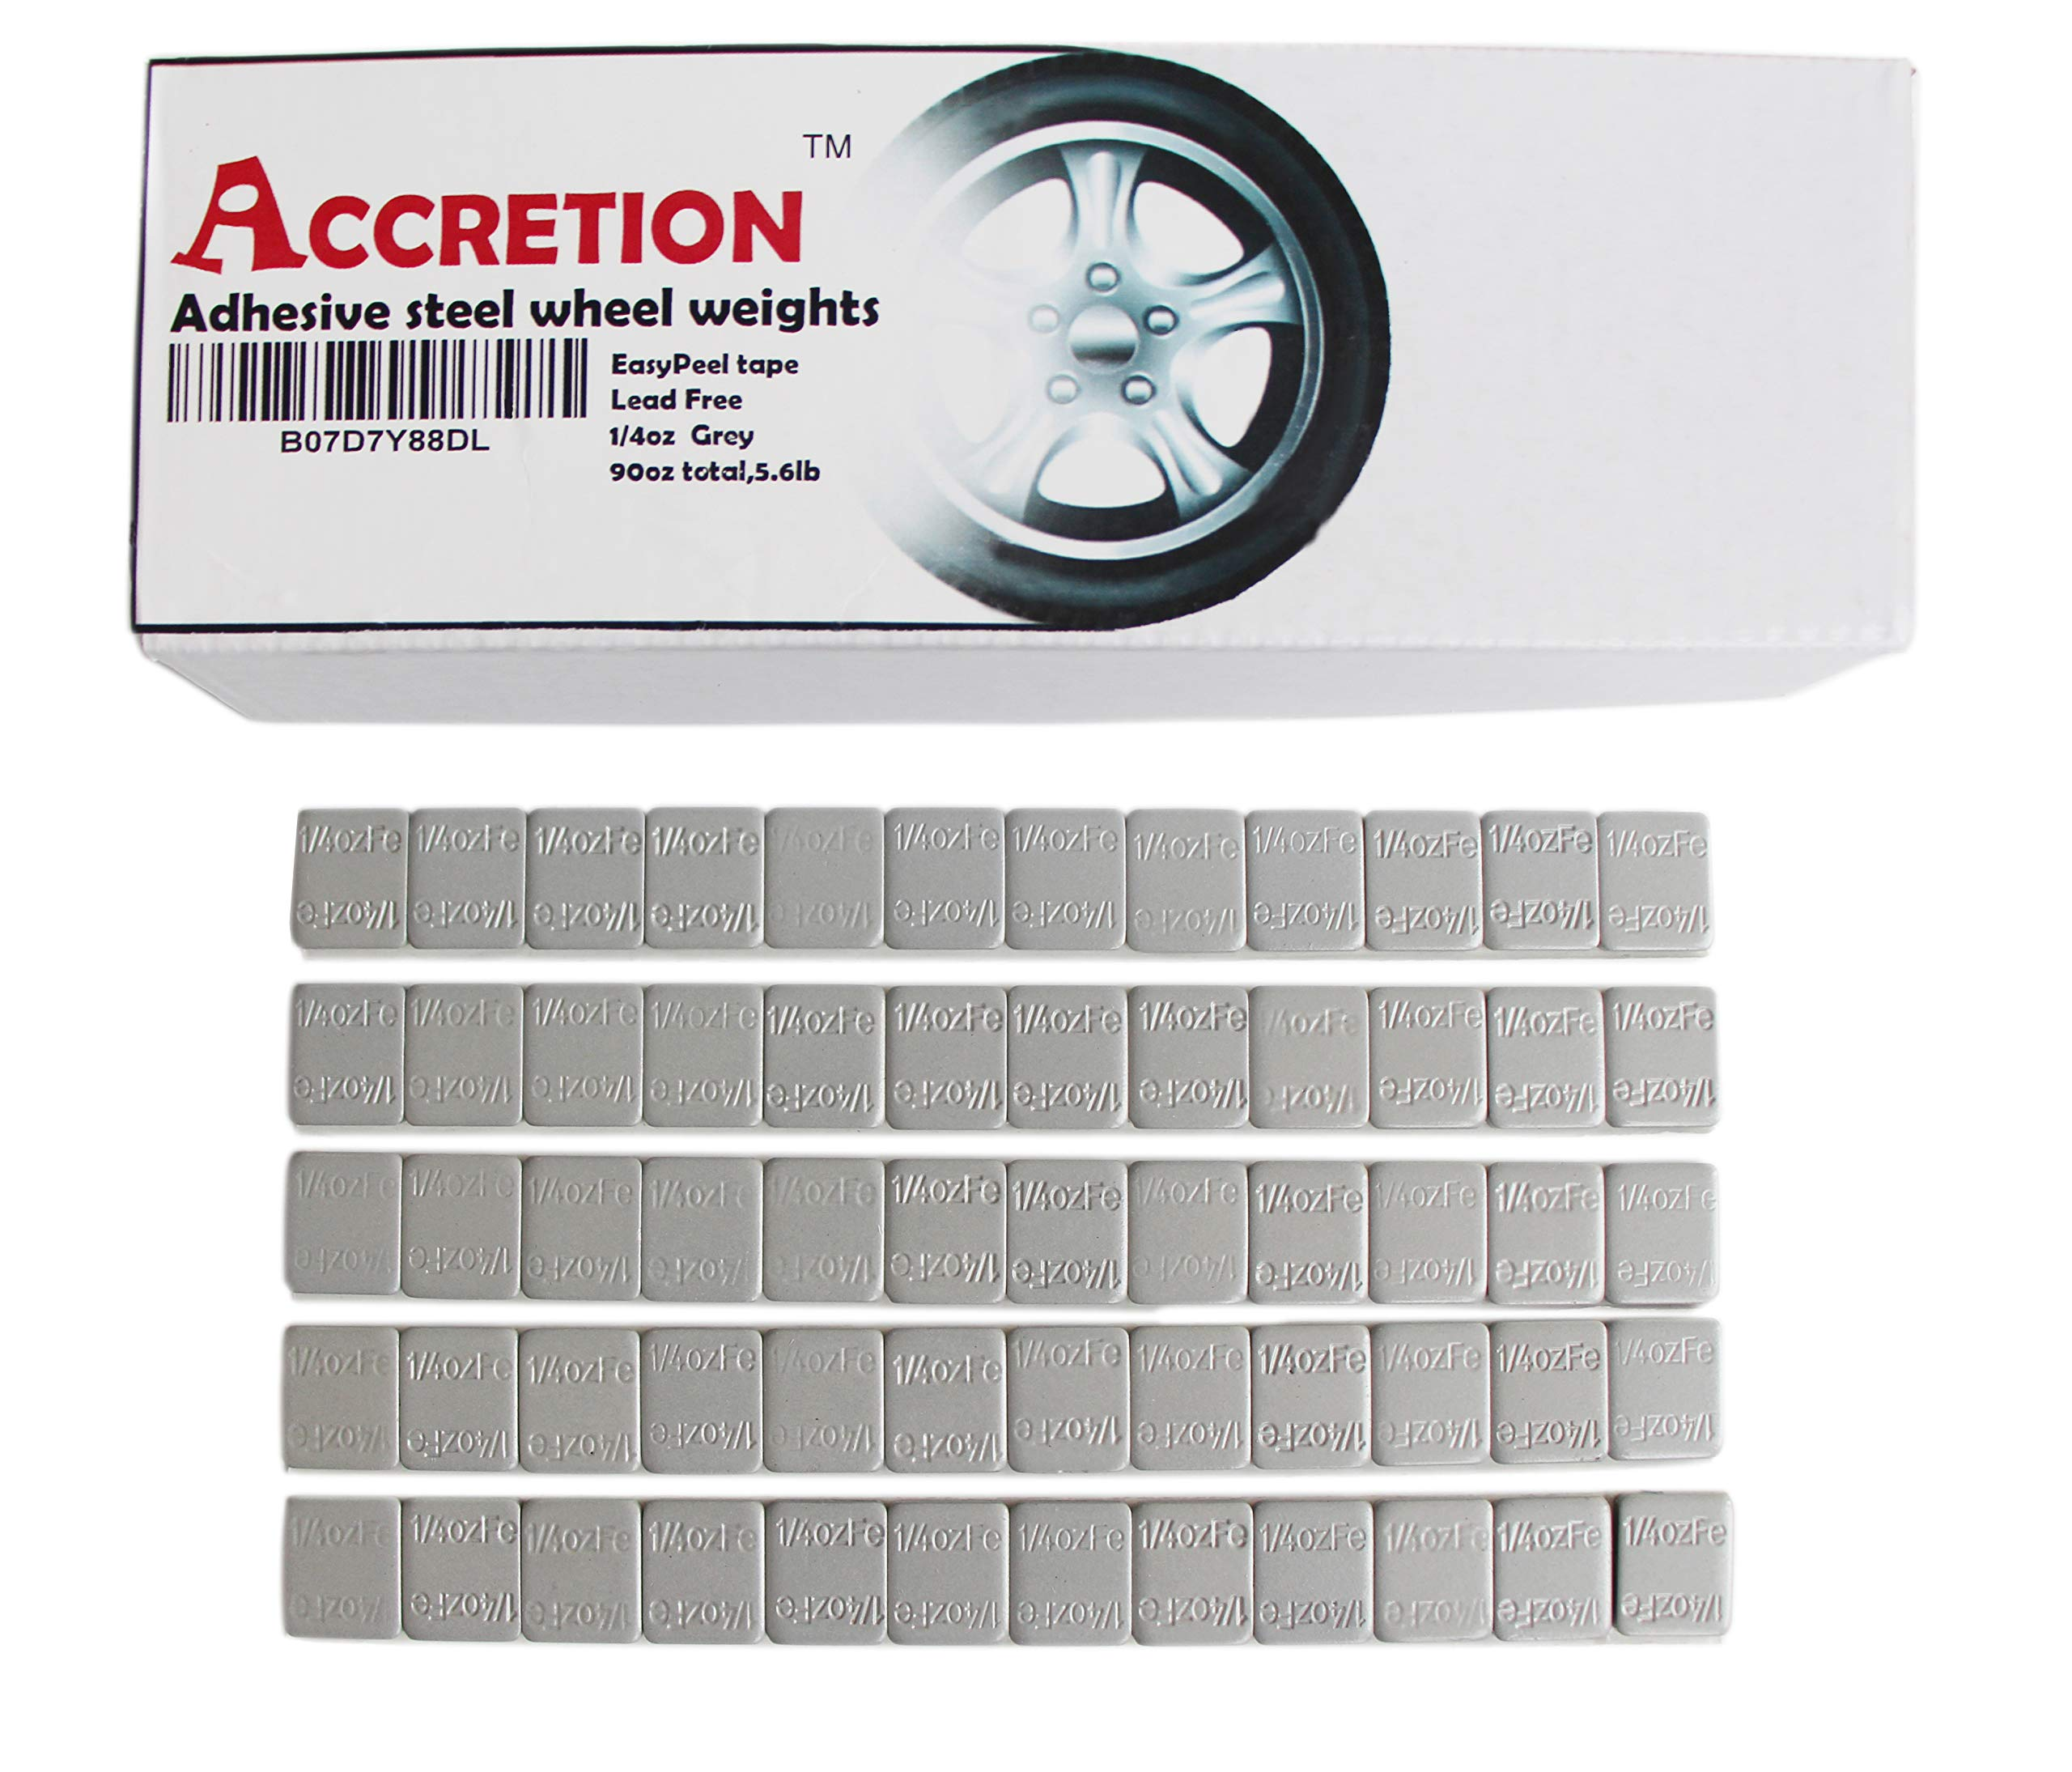 Accretion 1/4 Oz, 0.25 Oz, Grey, Wheel Weights (Lead Free), Duraco Dubl Kote Tape -2 mm Wide. Easy to Peel. Low Profile, 90 Oz Total, 3 Oz/Strips, 5.6 Lbs(360 Pcs) by Accretion